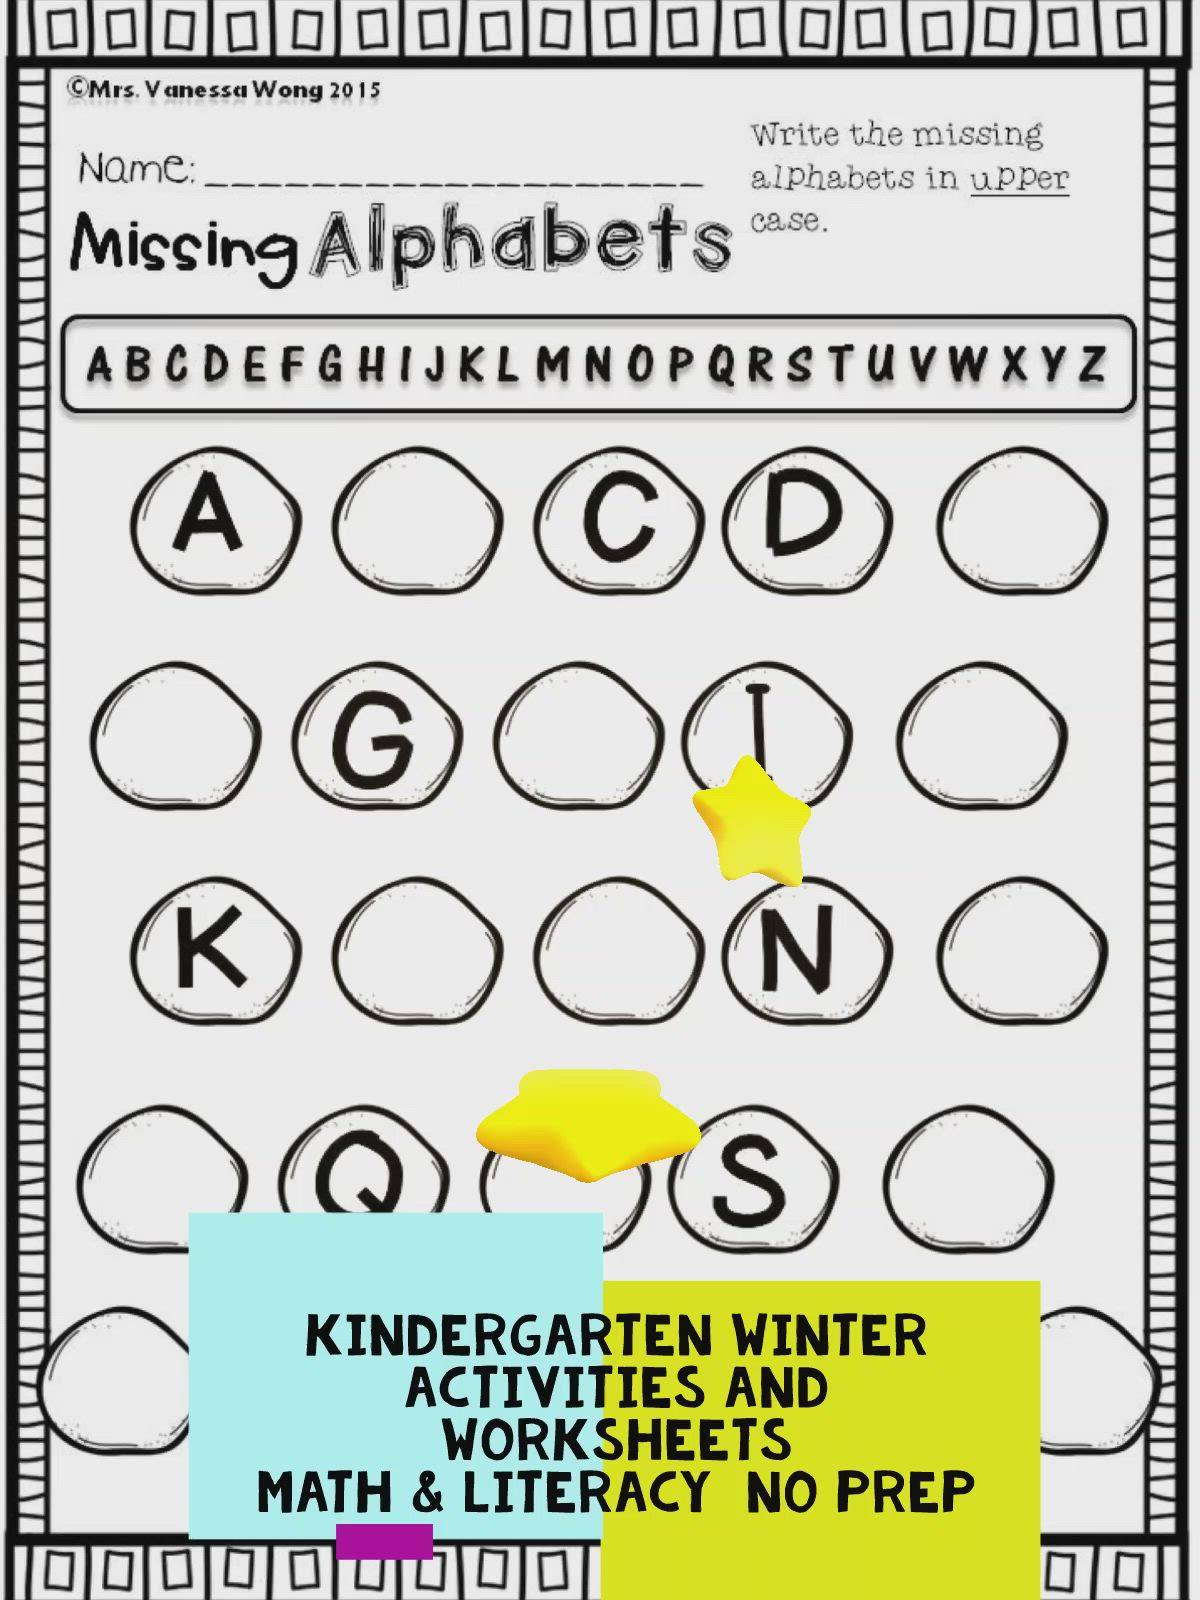 Winter Math And Literacy Worksheets And Activities For Kindergarten Video Winter Math Literacy Worksheets Free Kindergarten Printables [ 1600 x 1200 Pixel ]